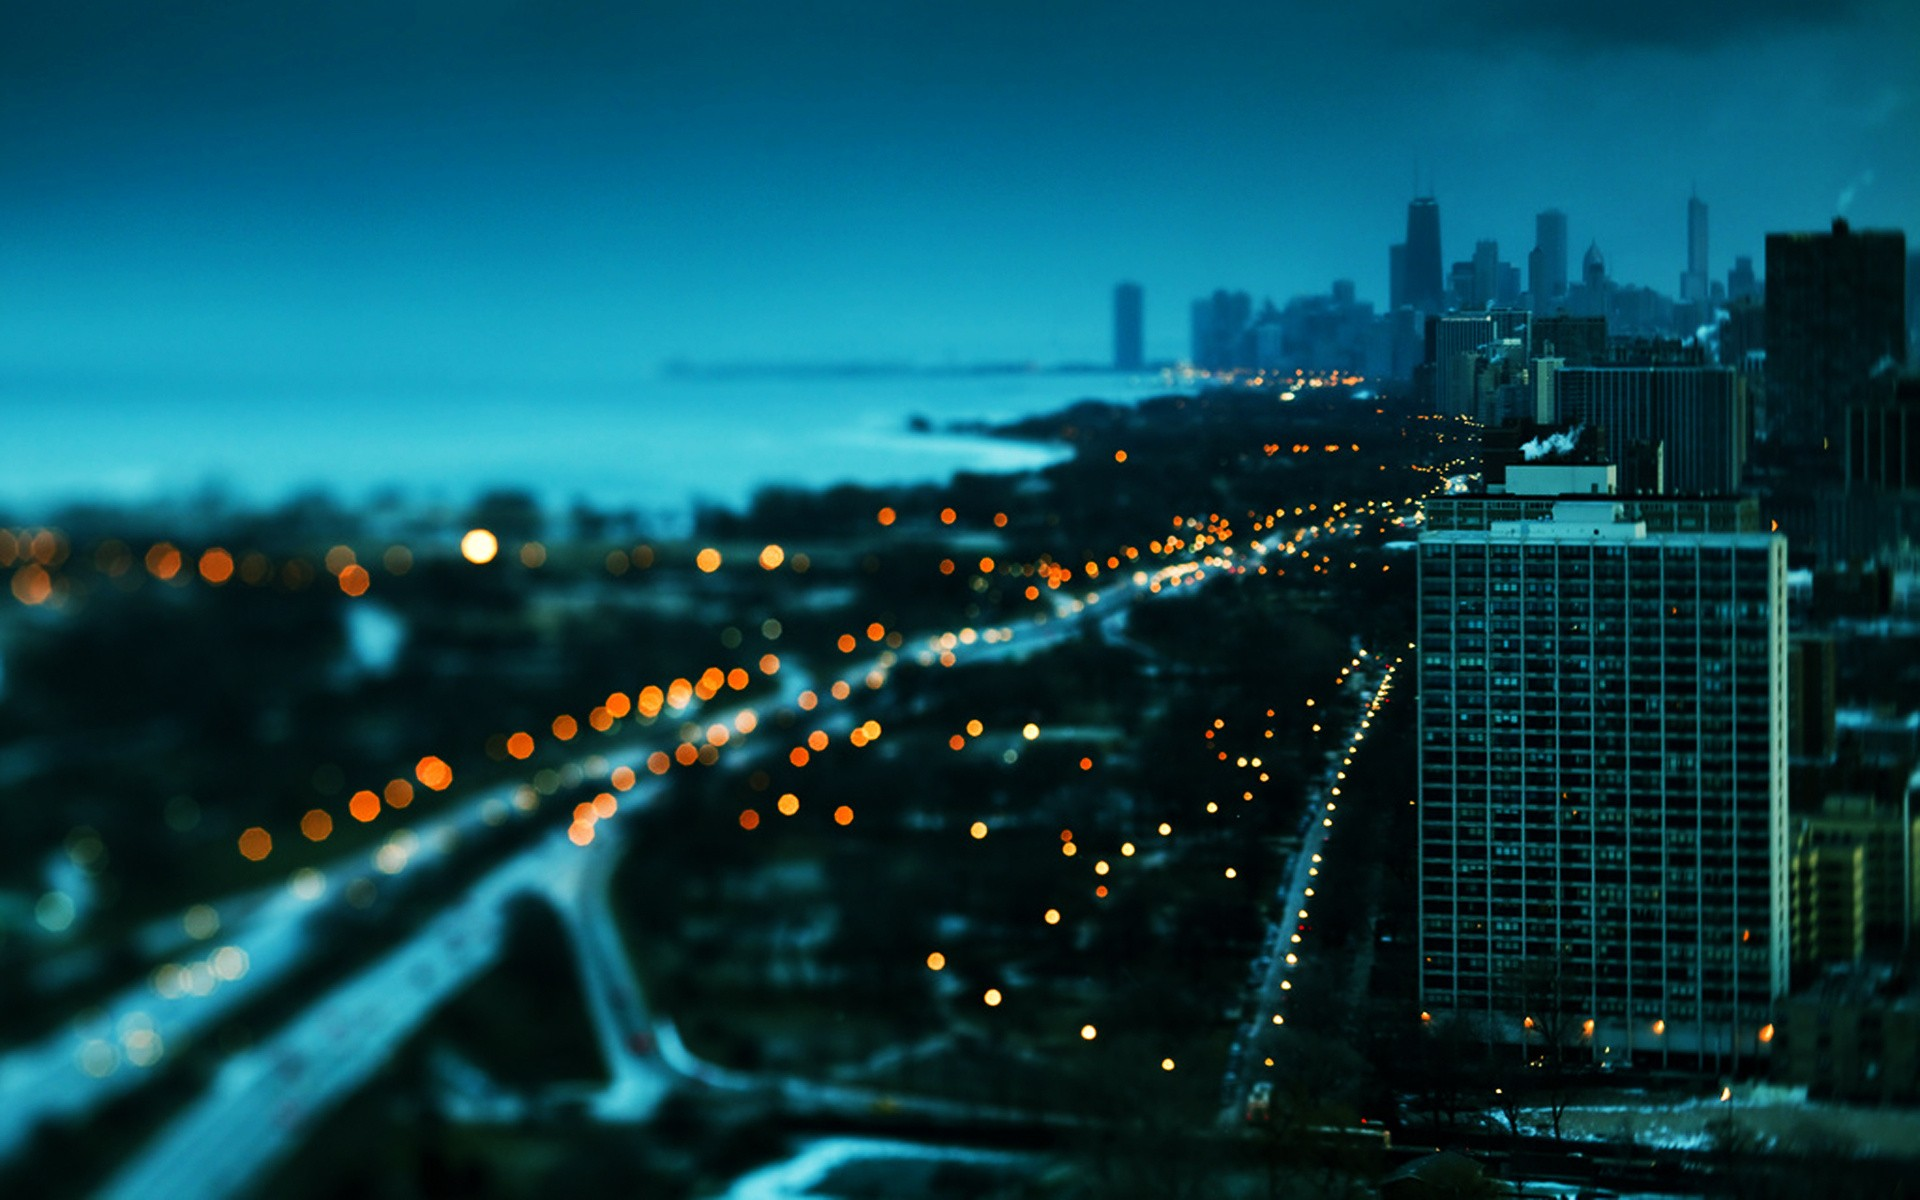 30  Tilt Shift Wallpapers, Backgrounds, Images | Design Trends ... for City Lights At Night Wallpaper  570bof